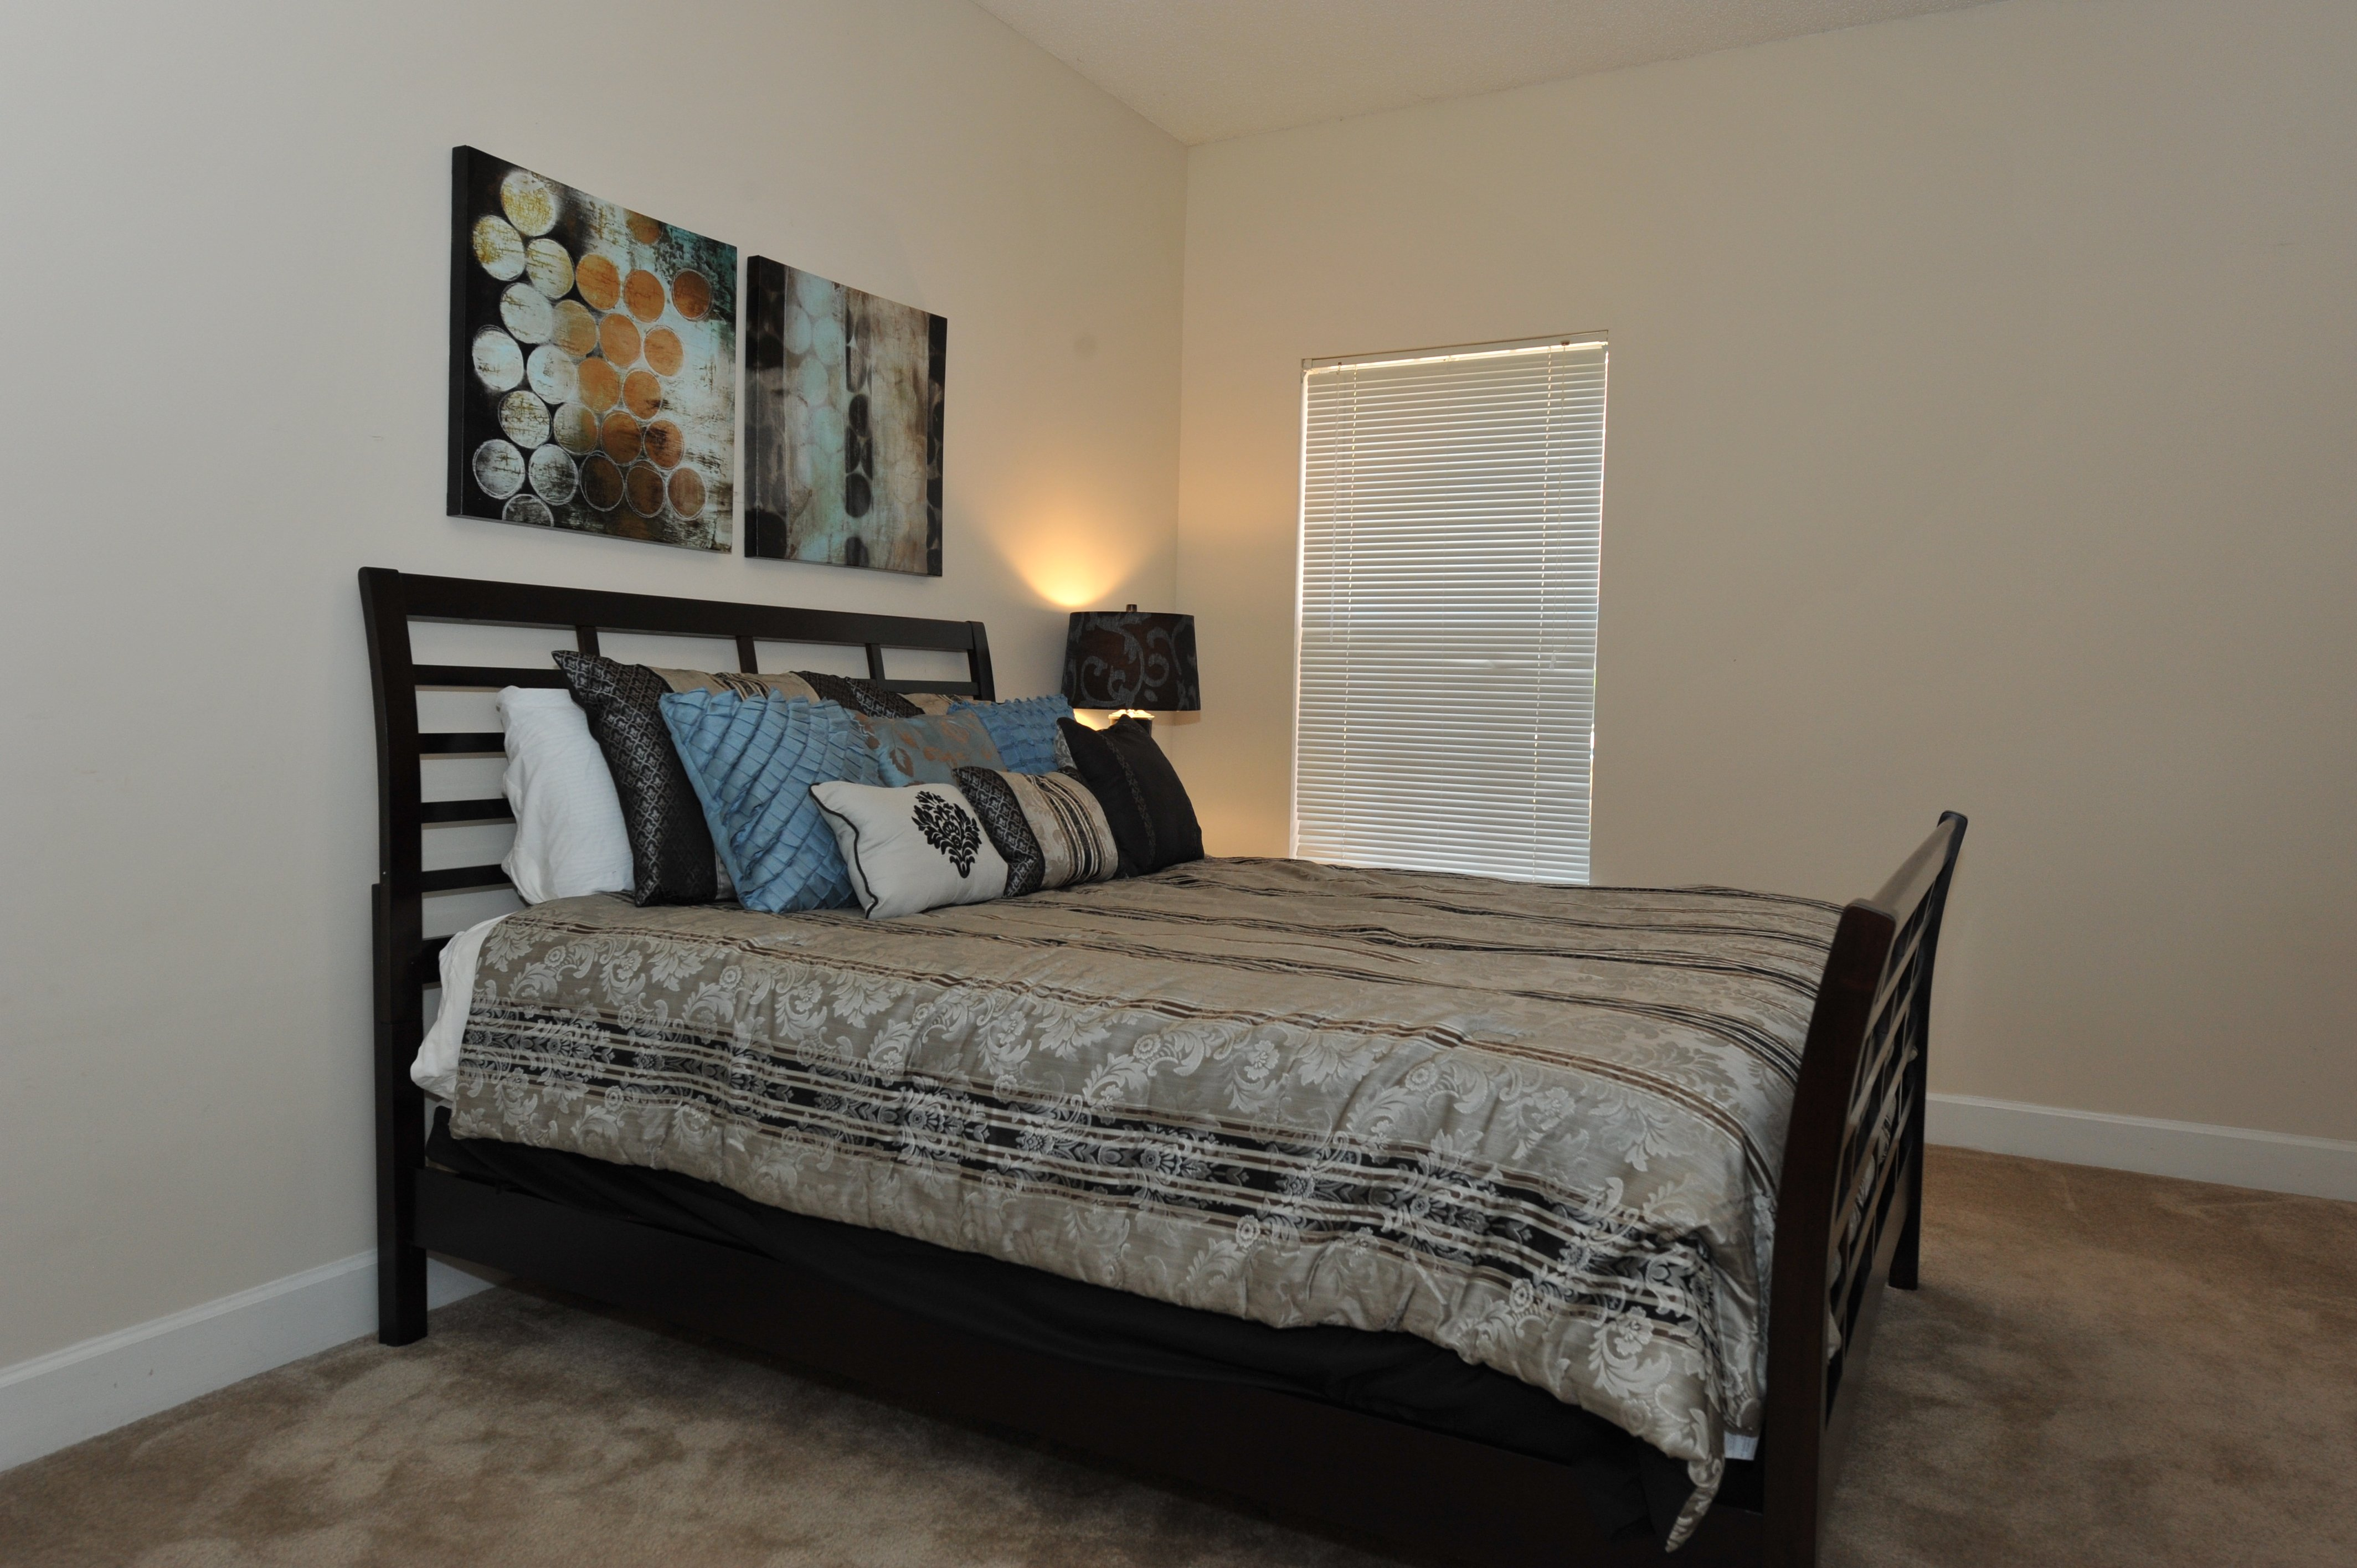 condos in Maumelle AR